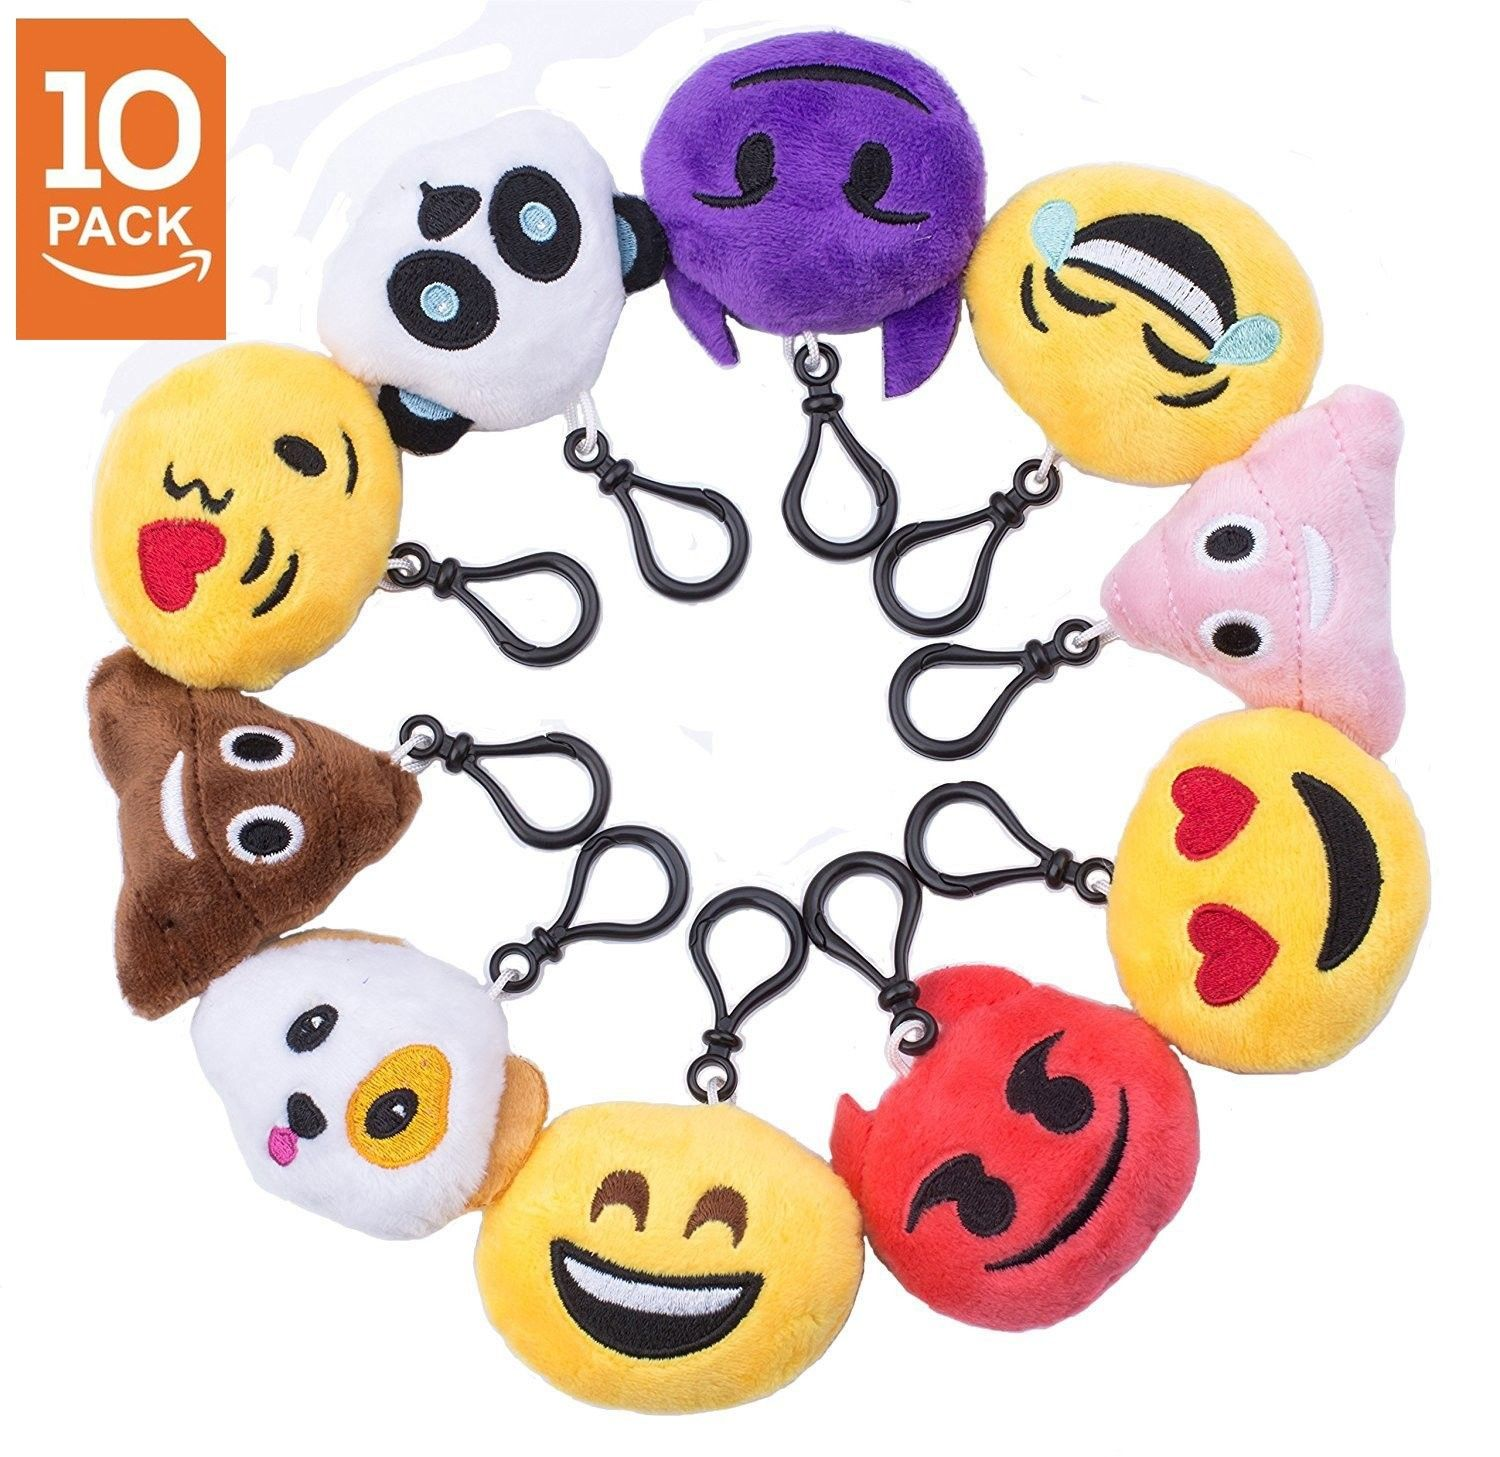 e0336ec3e03 Emoji Cute Plush Pillows Little Emoji Faces Great Birthday Party Favors -  Kids Party Supplies - Pack of 10(2 inch) - 10 Pack - C517AAO7NL0 - Event    Party ...